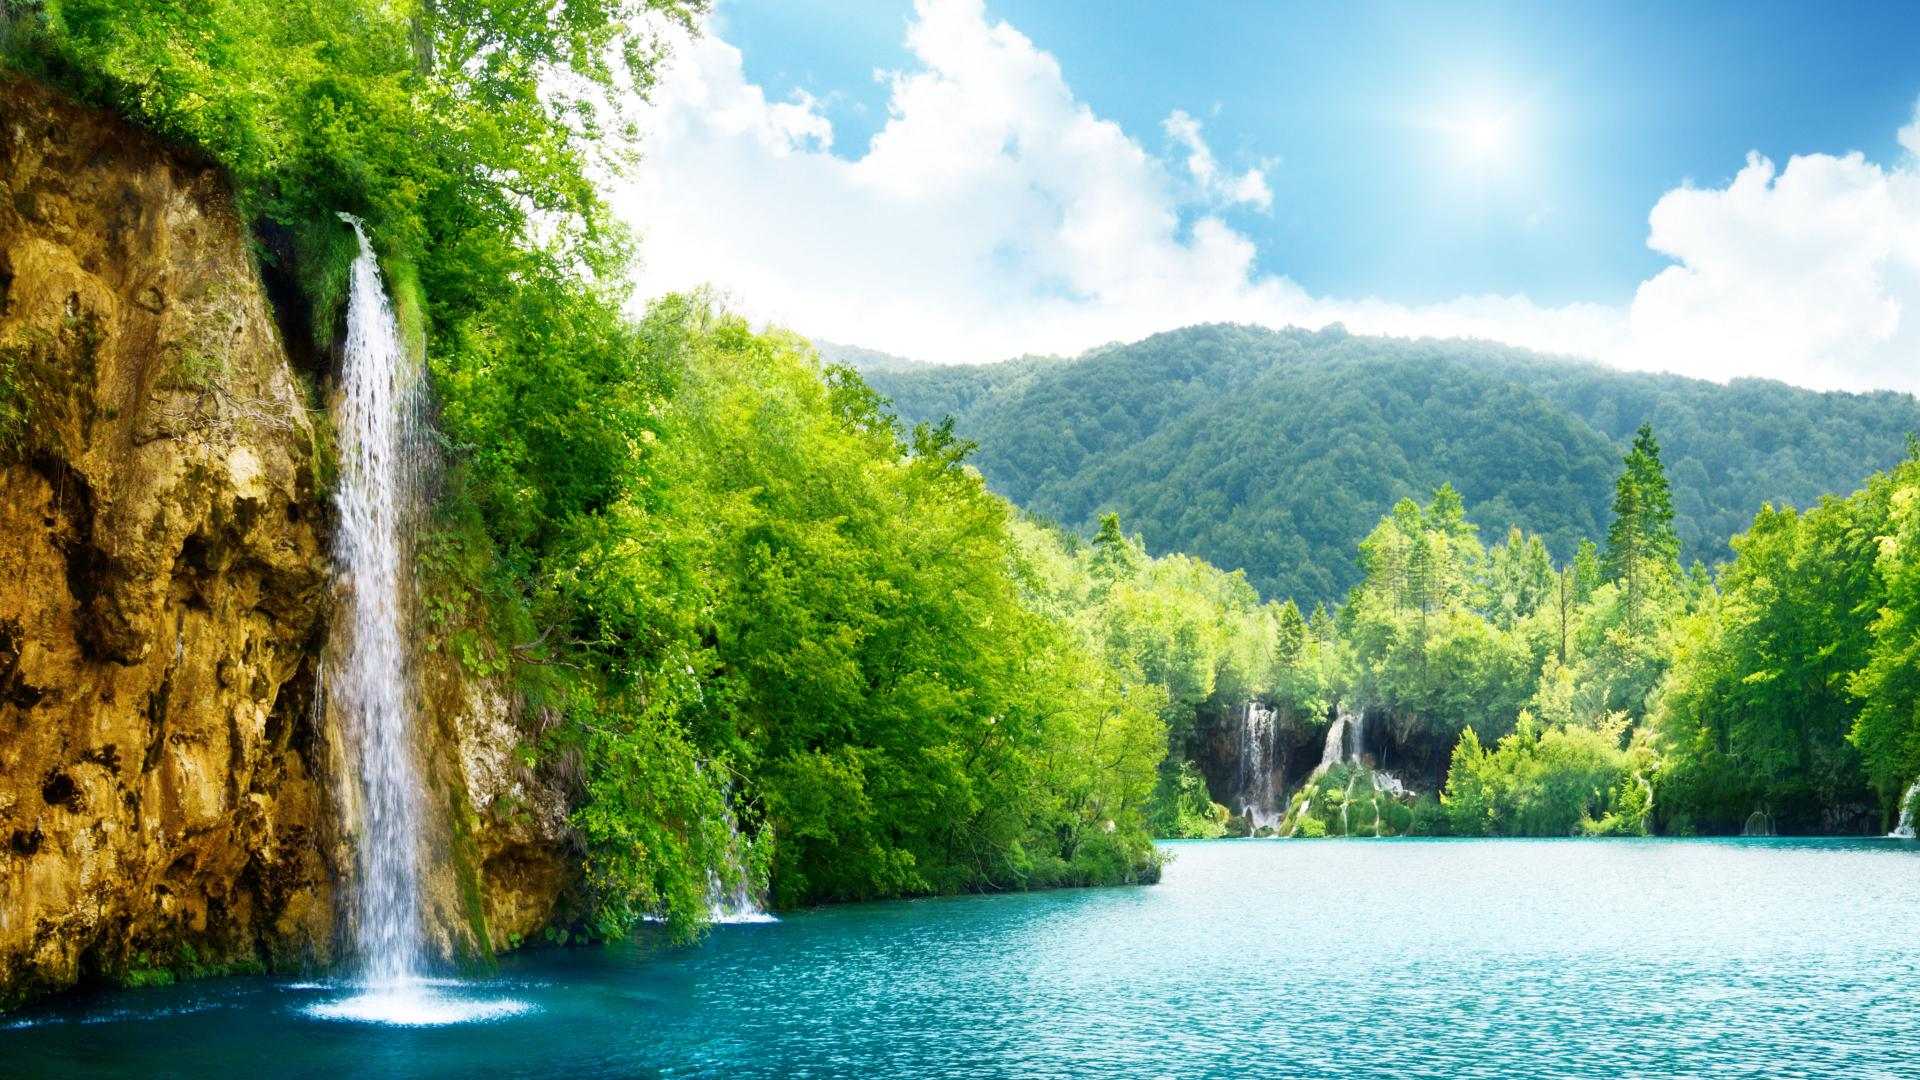 wallpaper for laptop windows 10,water resources,natural landscape,body of water,nature,water